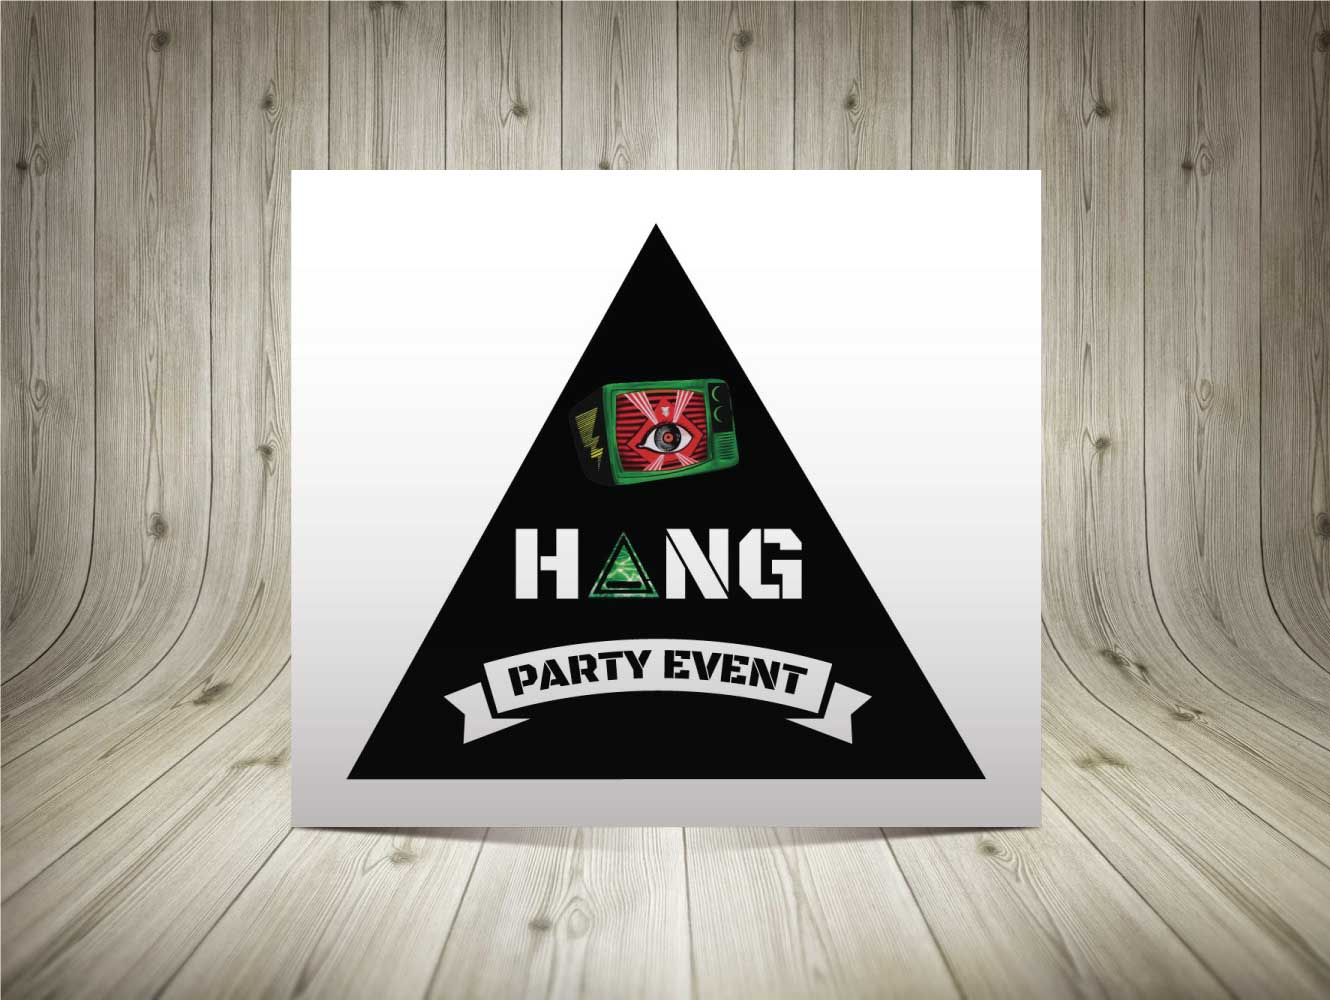 logo-hng-party-event-by-hangovershop